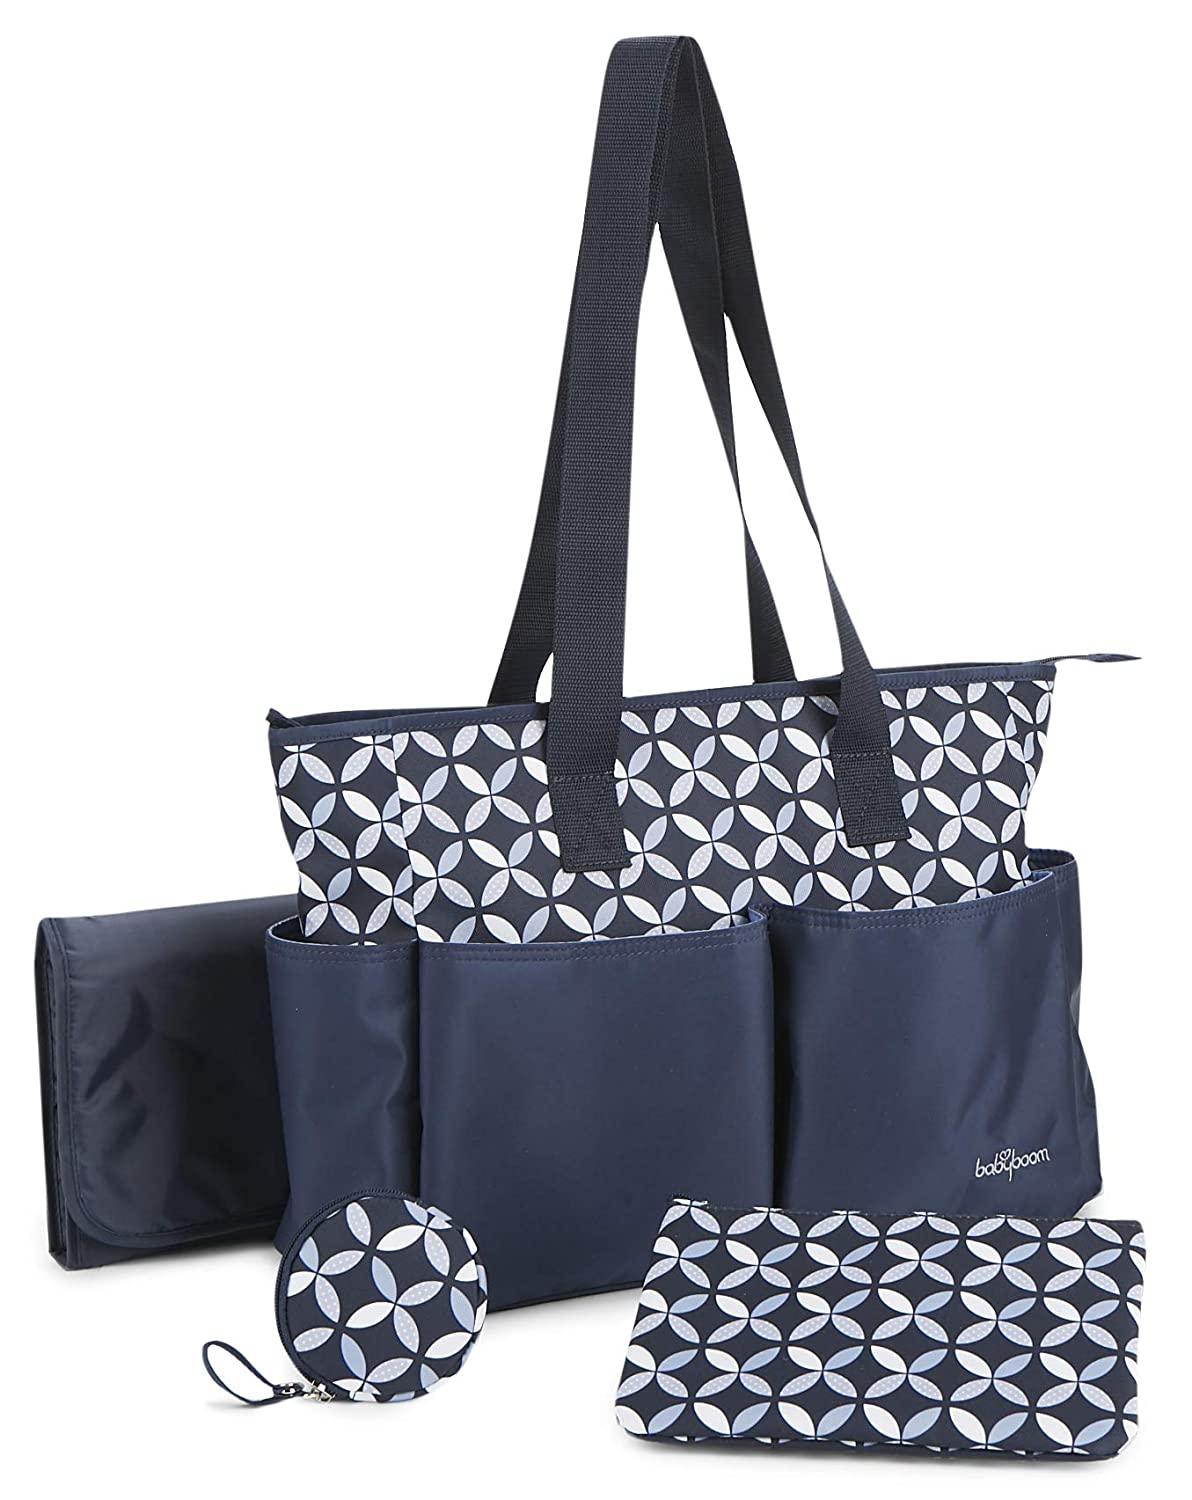 Diaper Bag with Piping Trim Available in 4 Colors See other listings